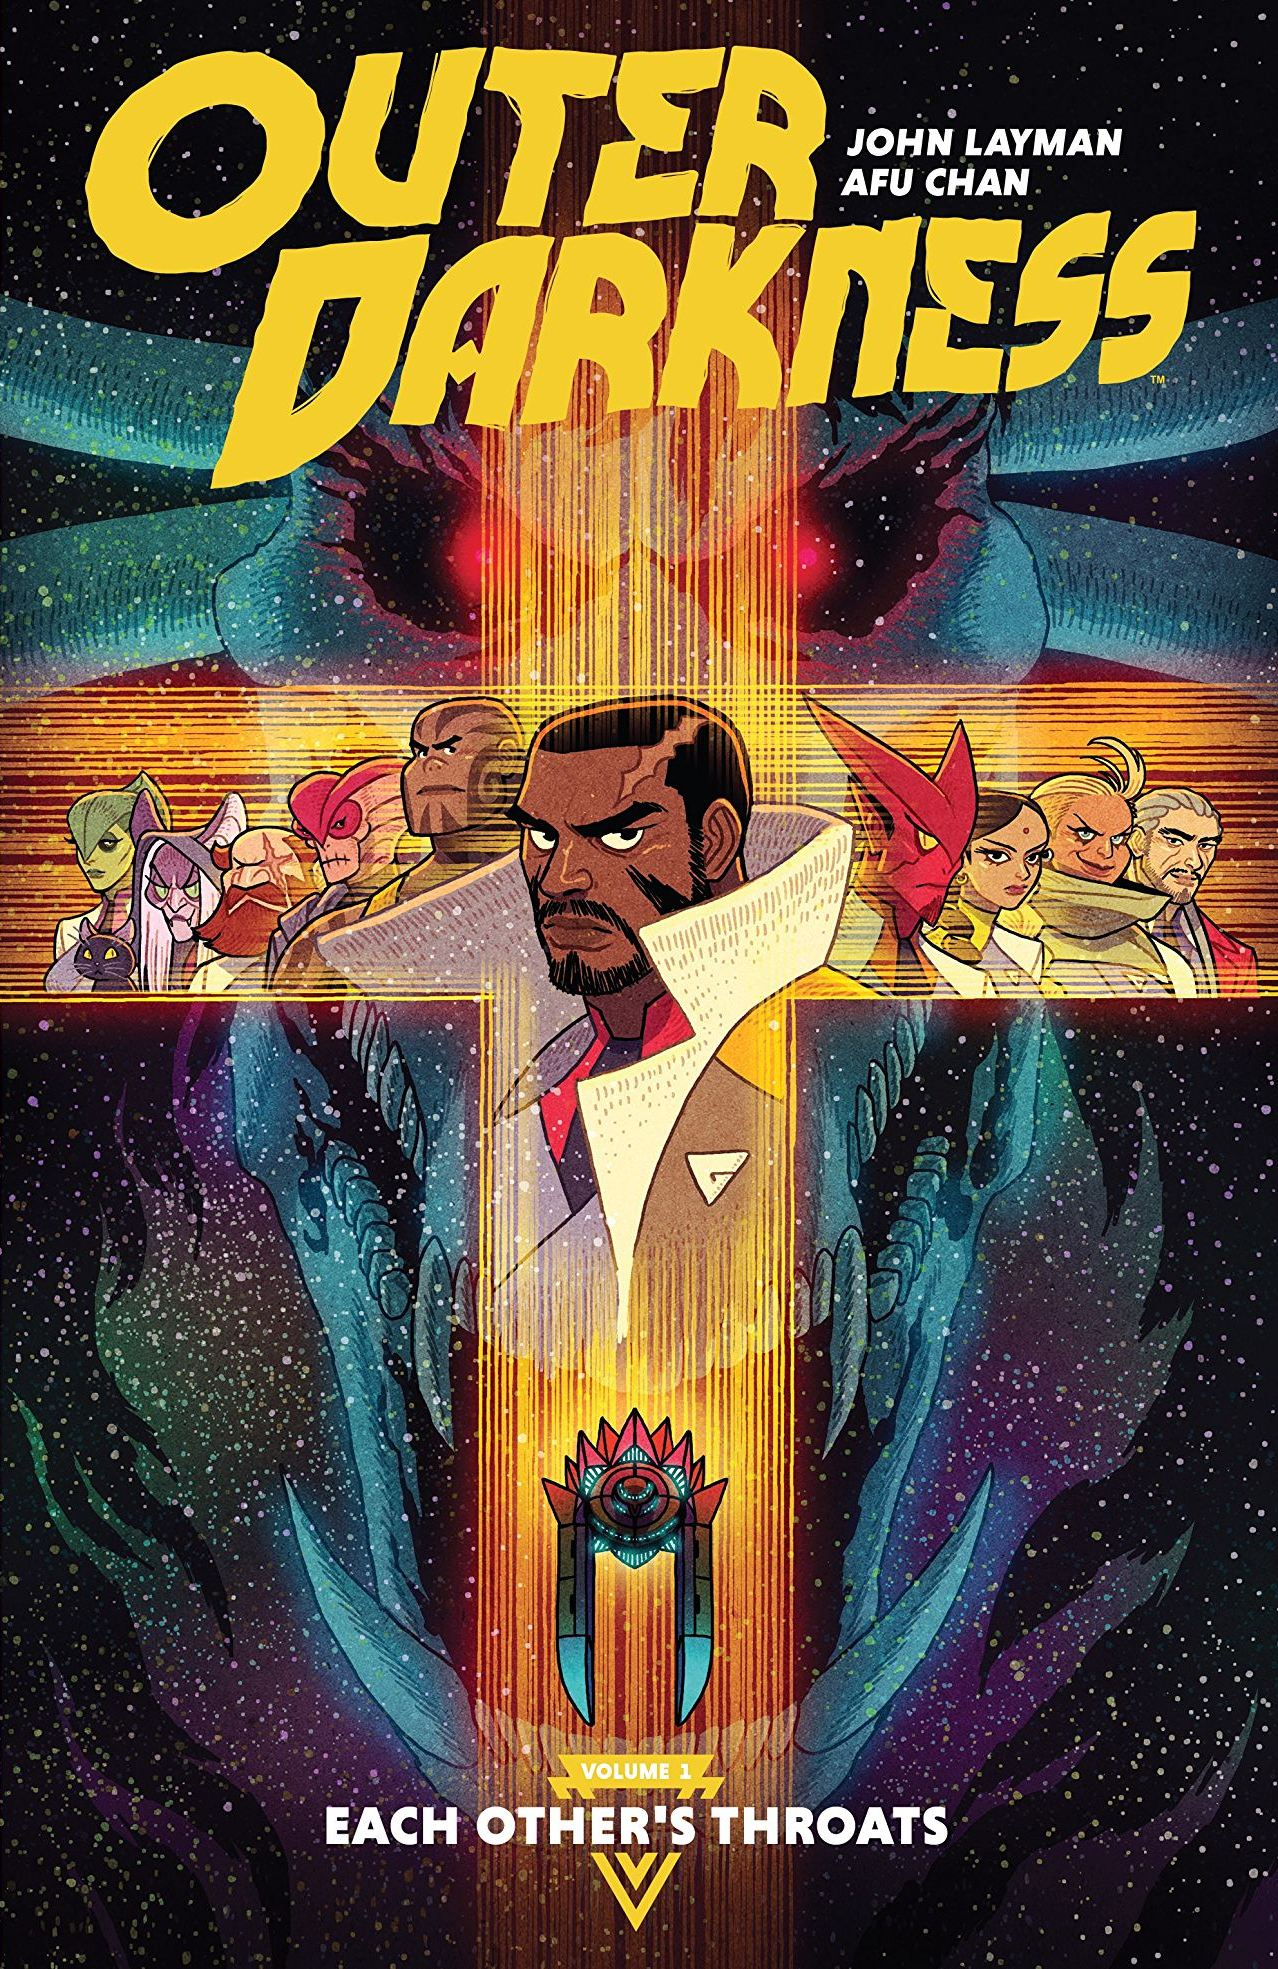 Outer Darkness Vol. 1: Each Other's Throats review: a twisted voyage